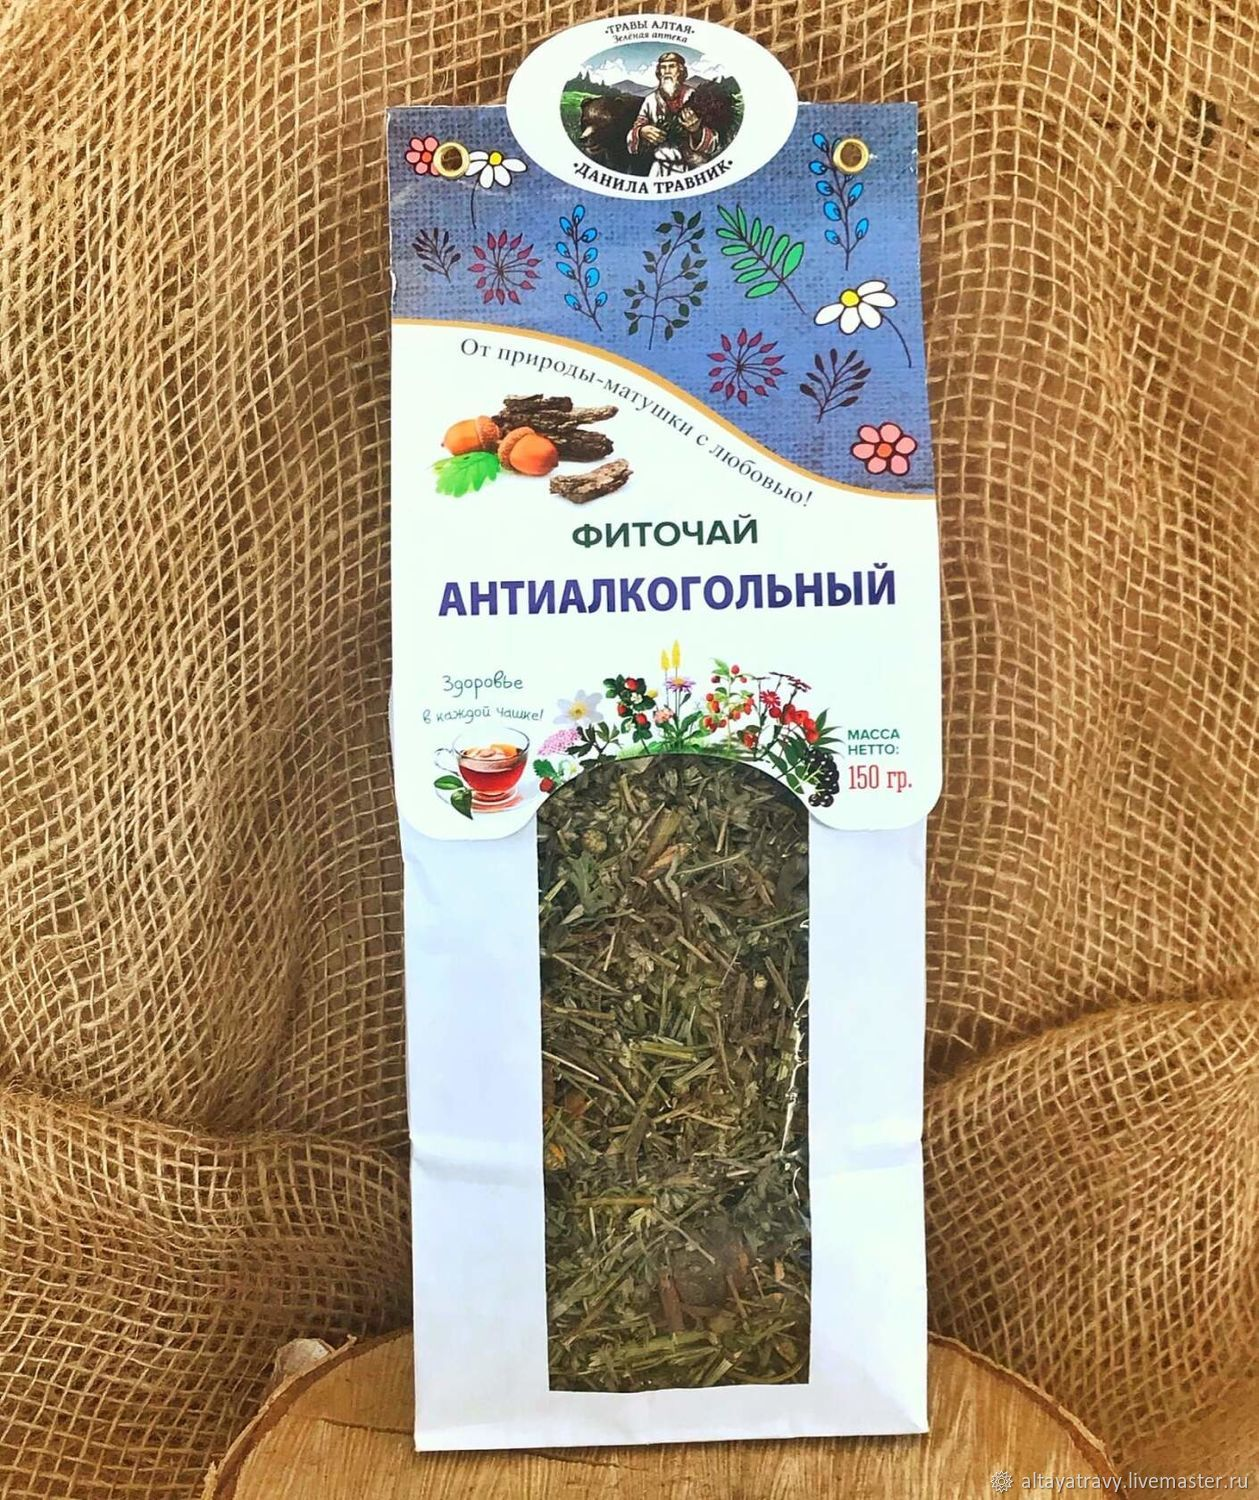 Collecting herbs anti-Alcoholic, Grass, Kemerovo,  Фото №1